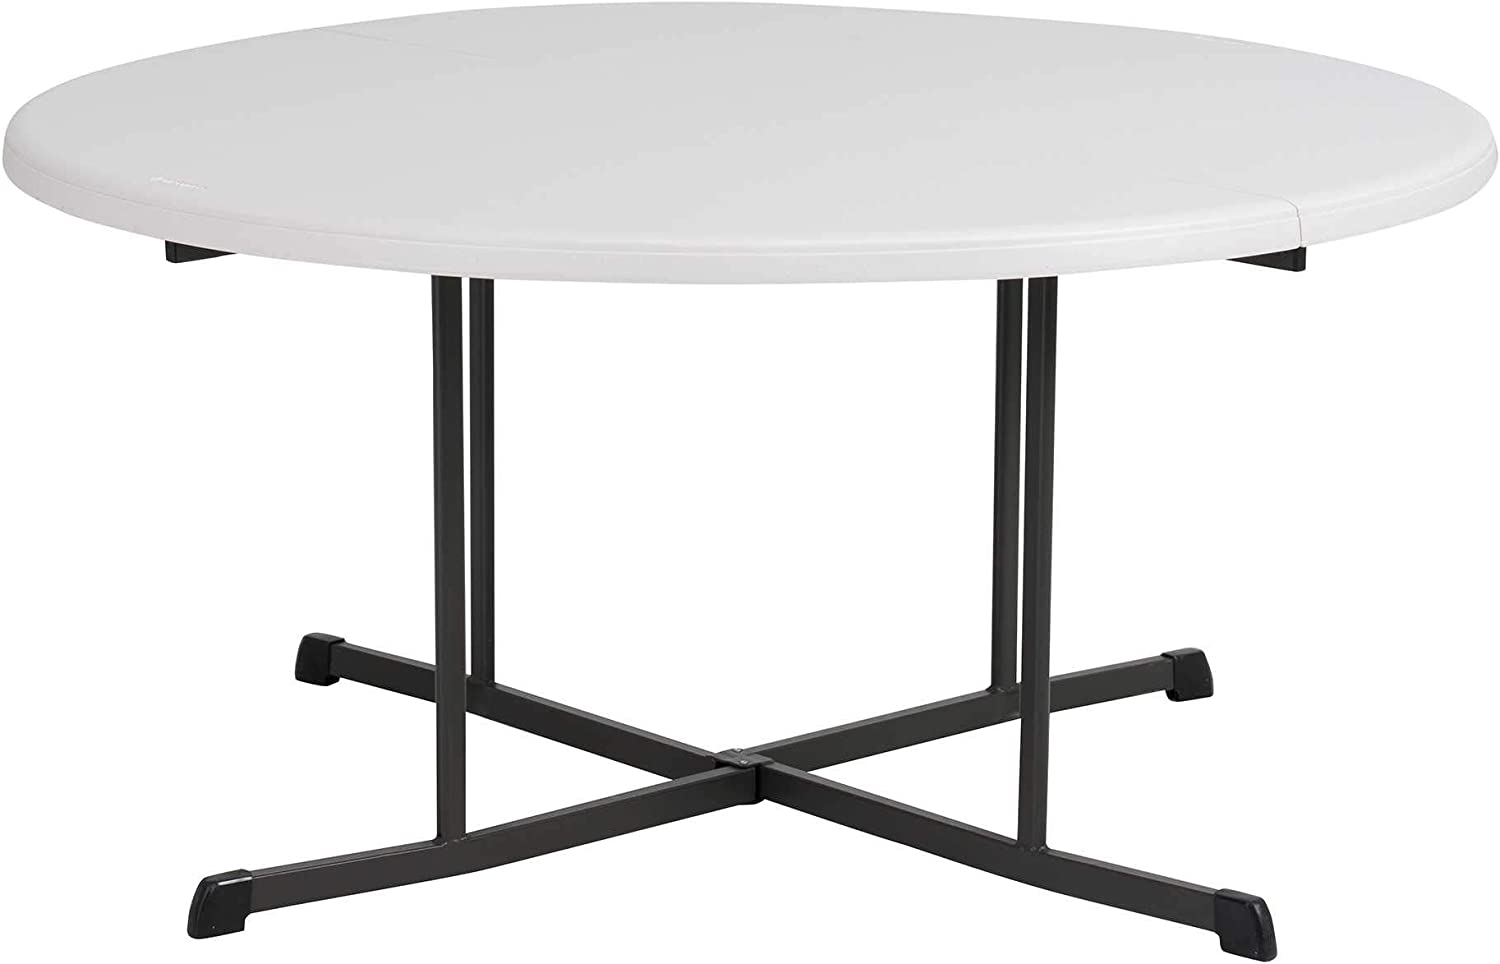 - Amazon.com: Lifetime Commercial Round Fold-in-Half Table, 60-Inch